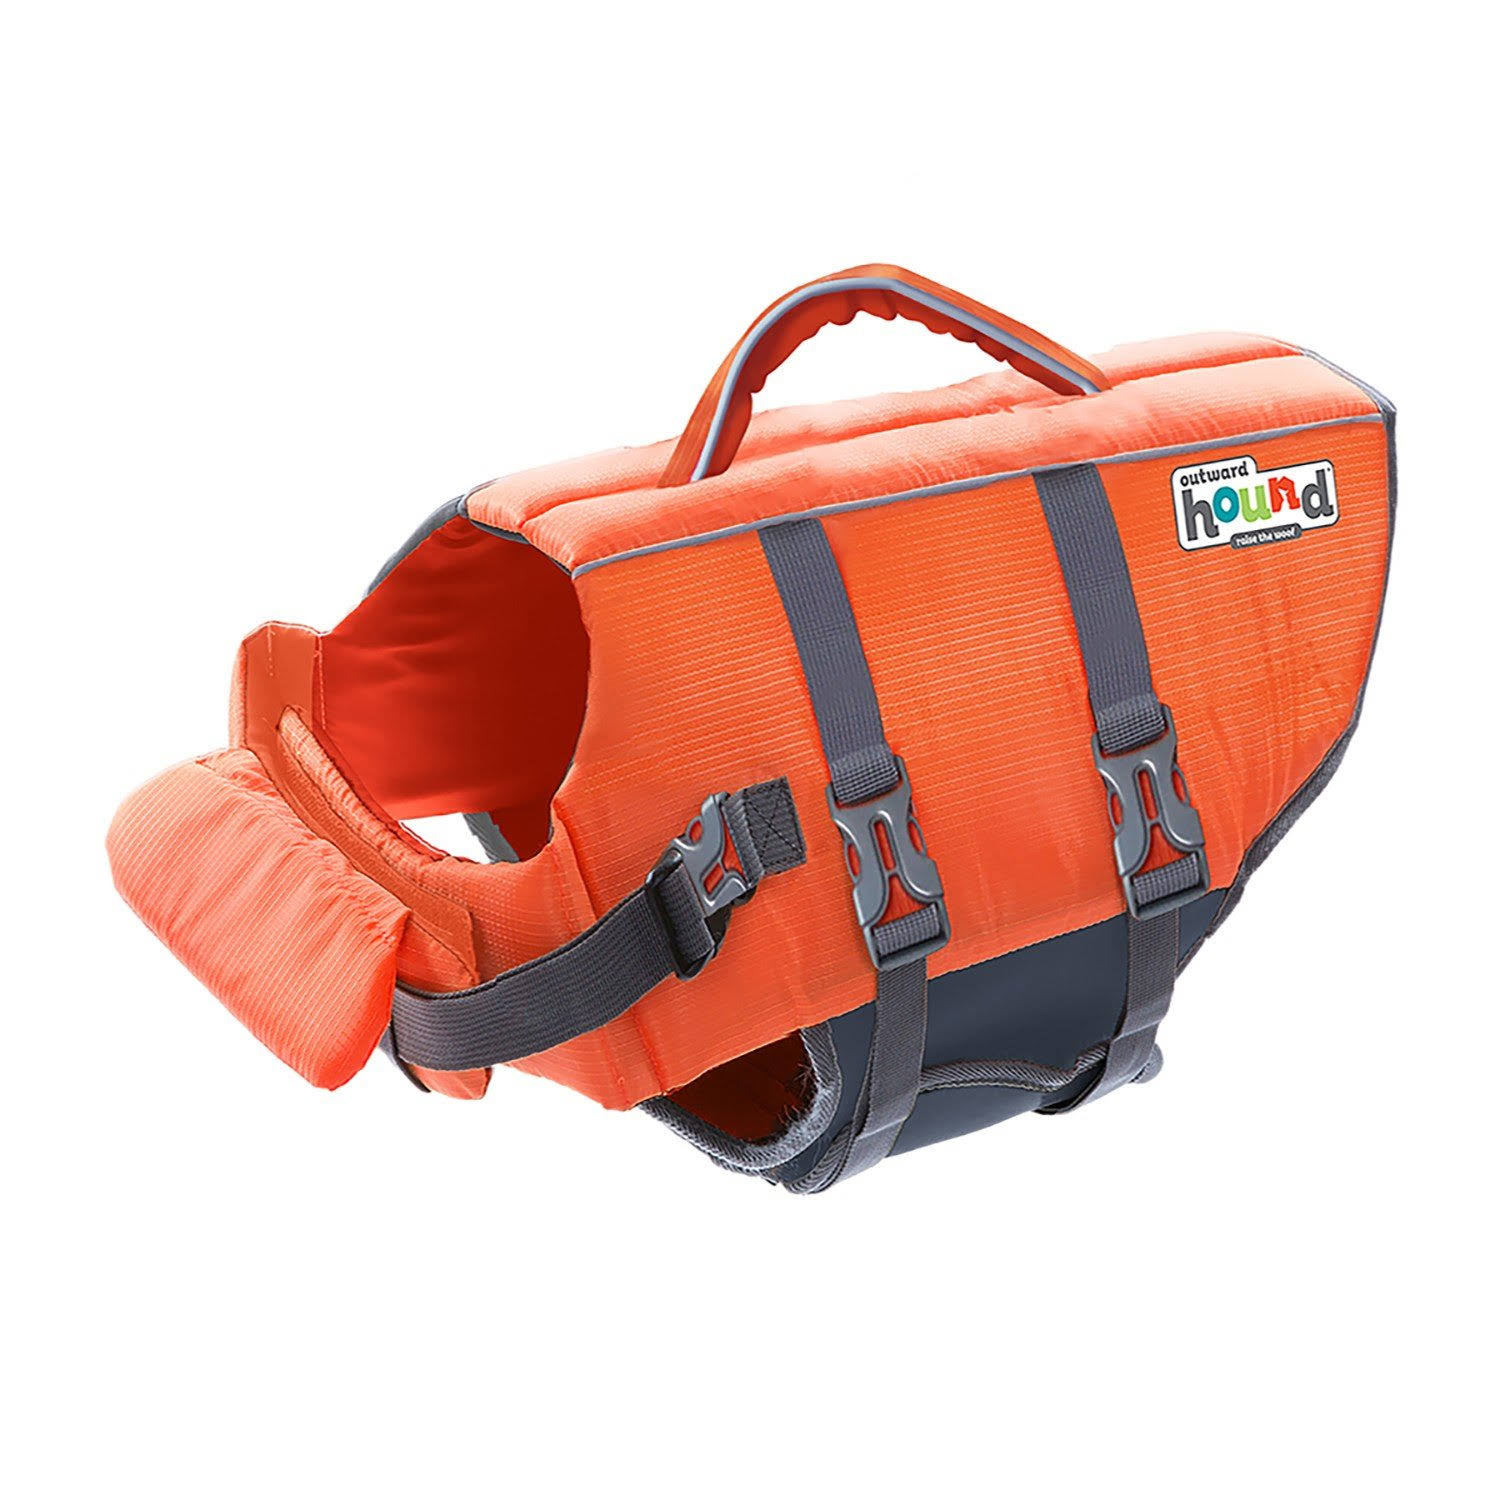 Outward Hound Pupsaver Ripstop Life Jacket - Orange, Small